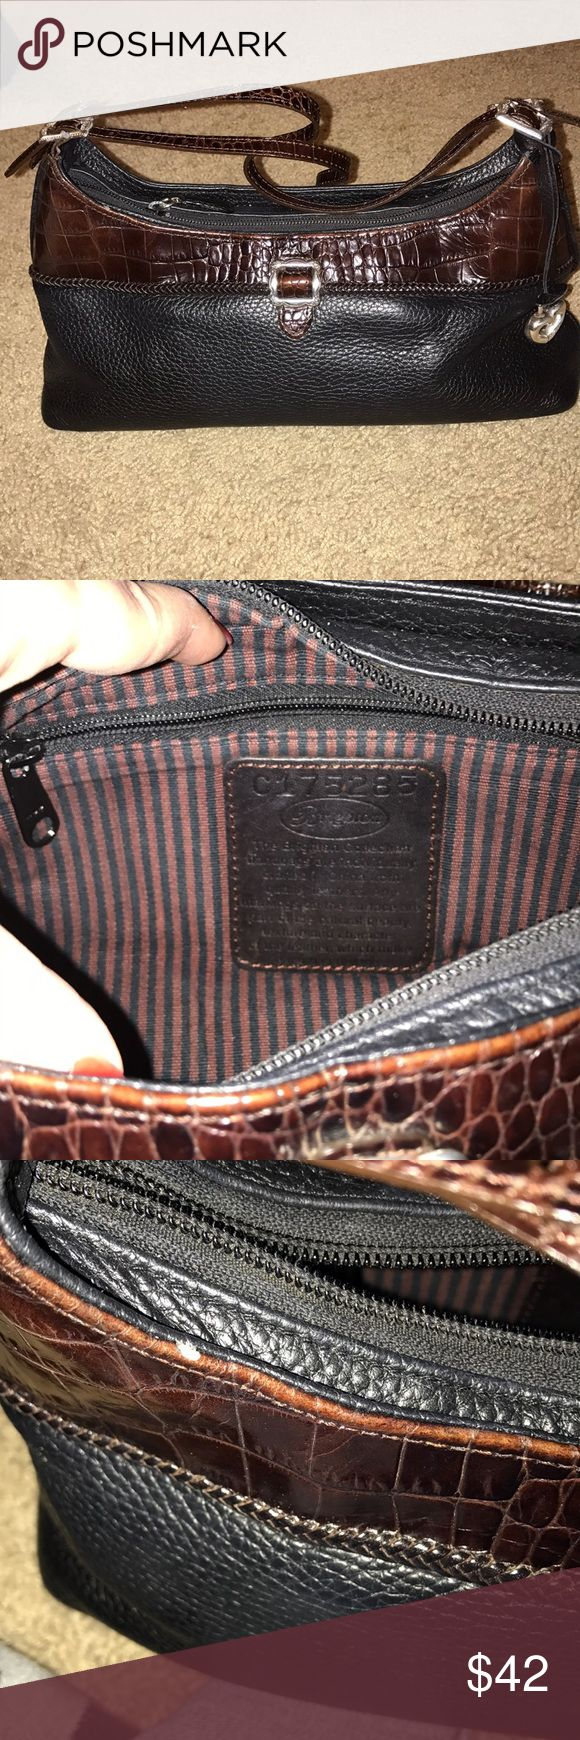 Brighton Purse Small shoulder Brighton purse. Barely used. 2 pockets. Does have small chip but hard to see. Brighton Bags Shoulder Bags